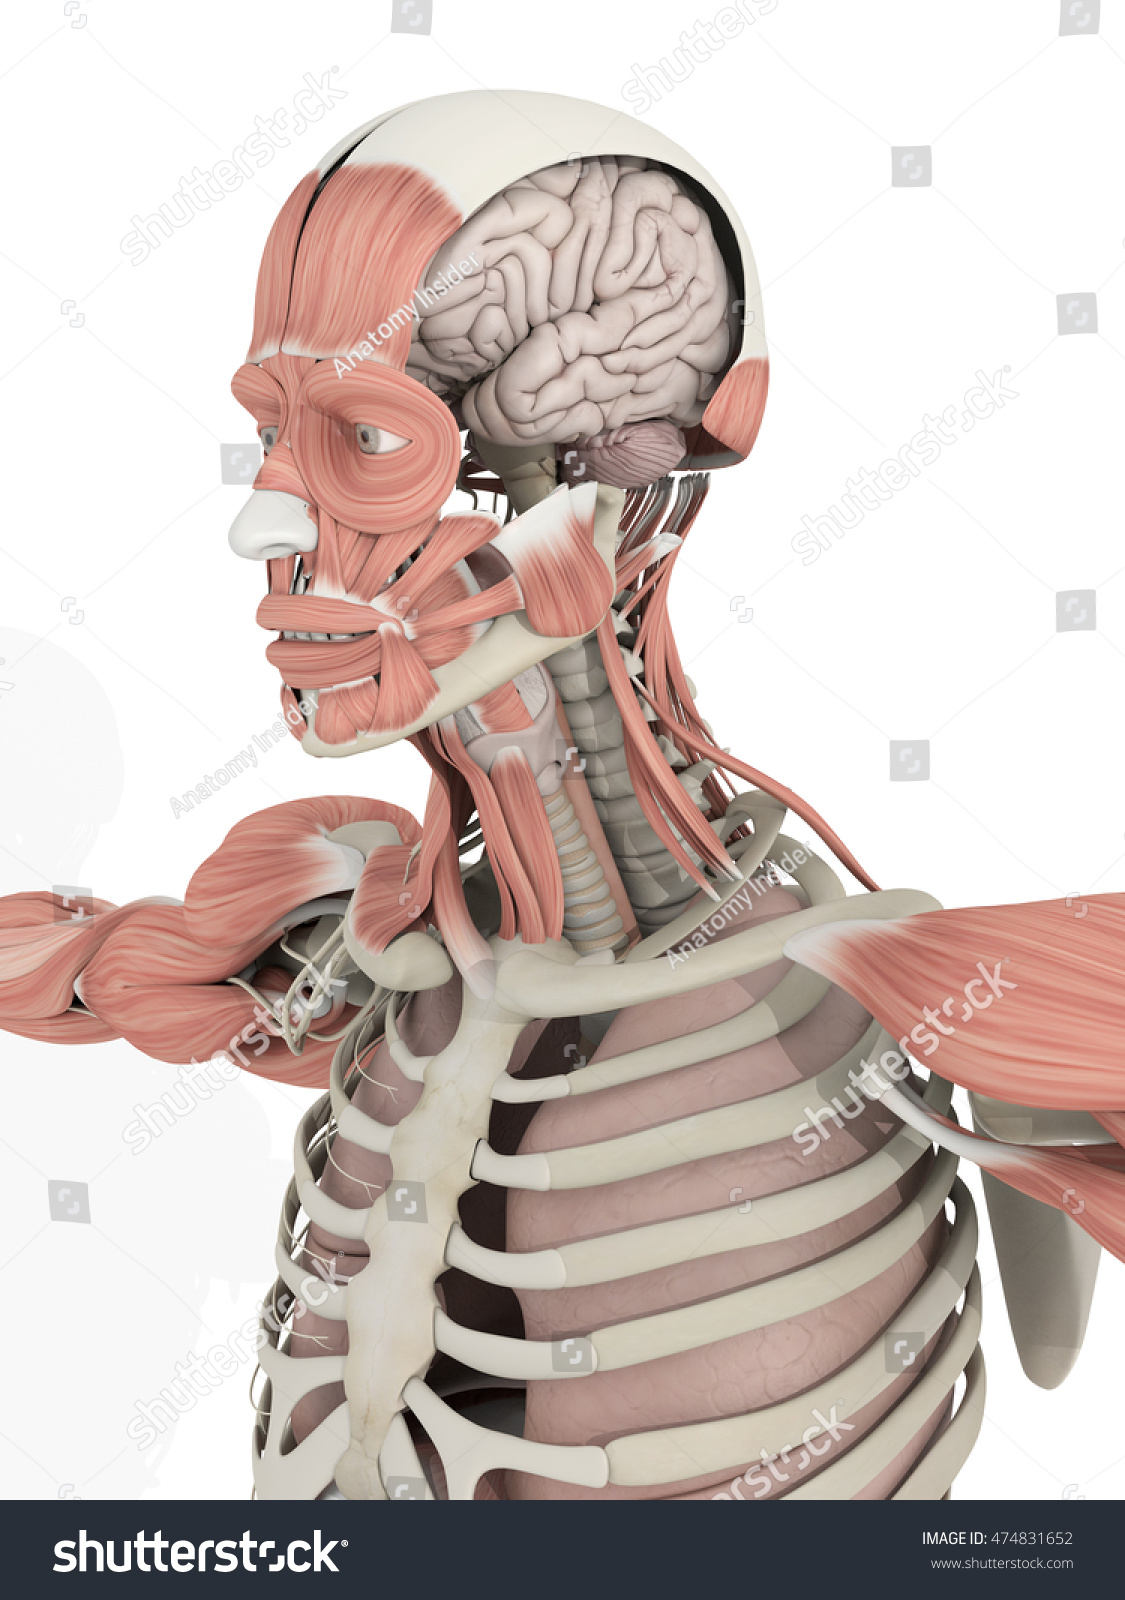 Human Anatomy Head Brain Medical Illustration Stock Illustration ...